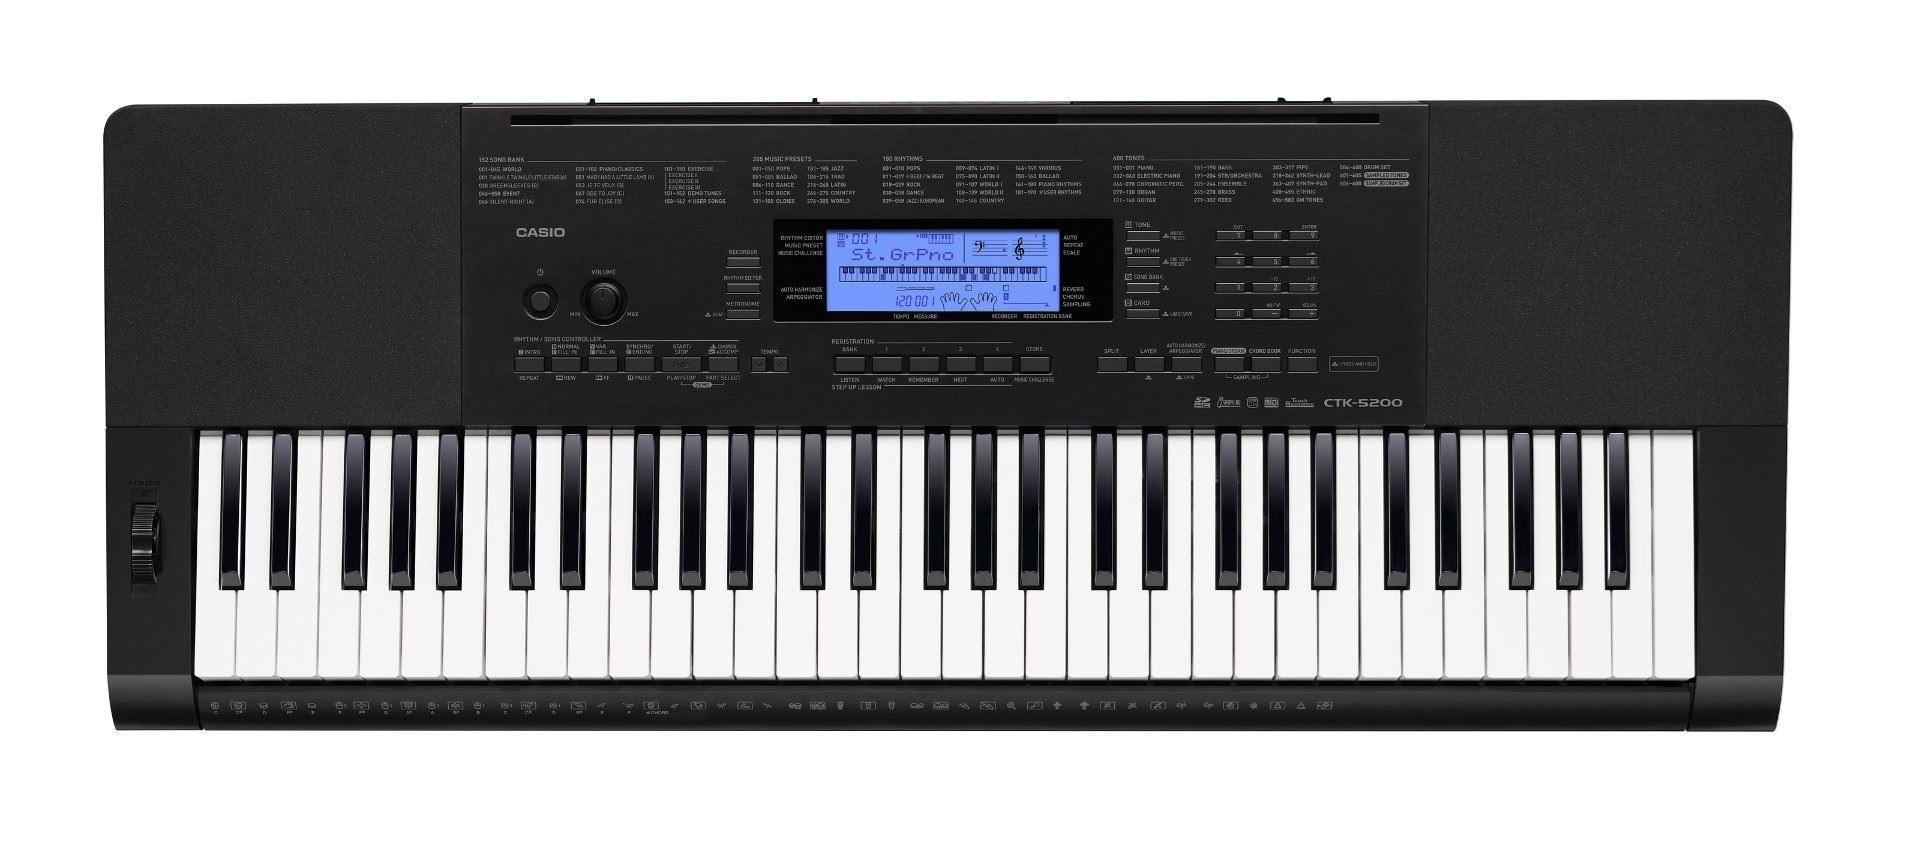 Инструкция casio ctk 900 скачать